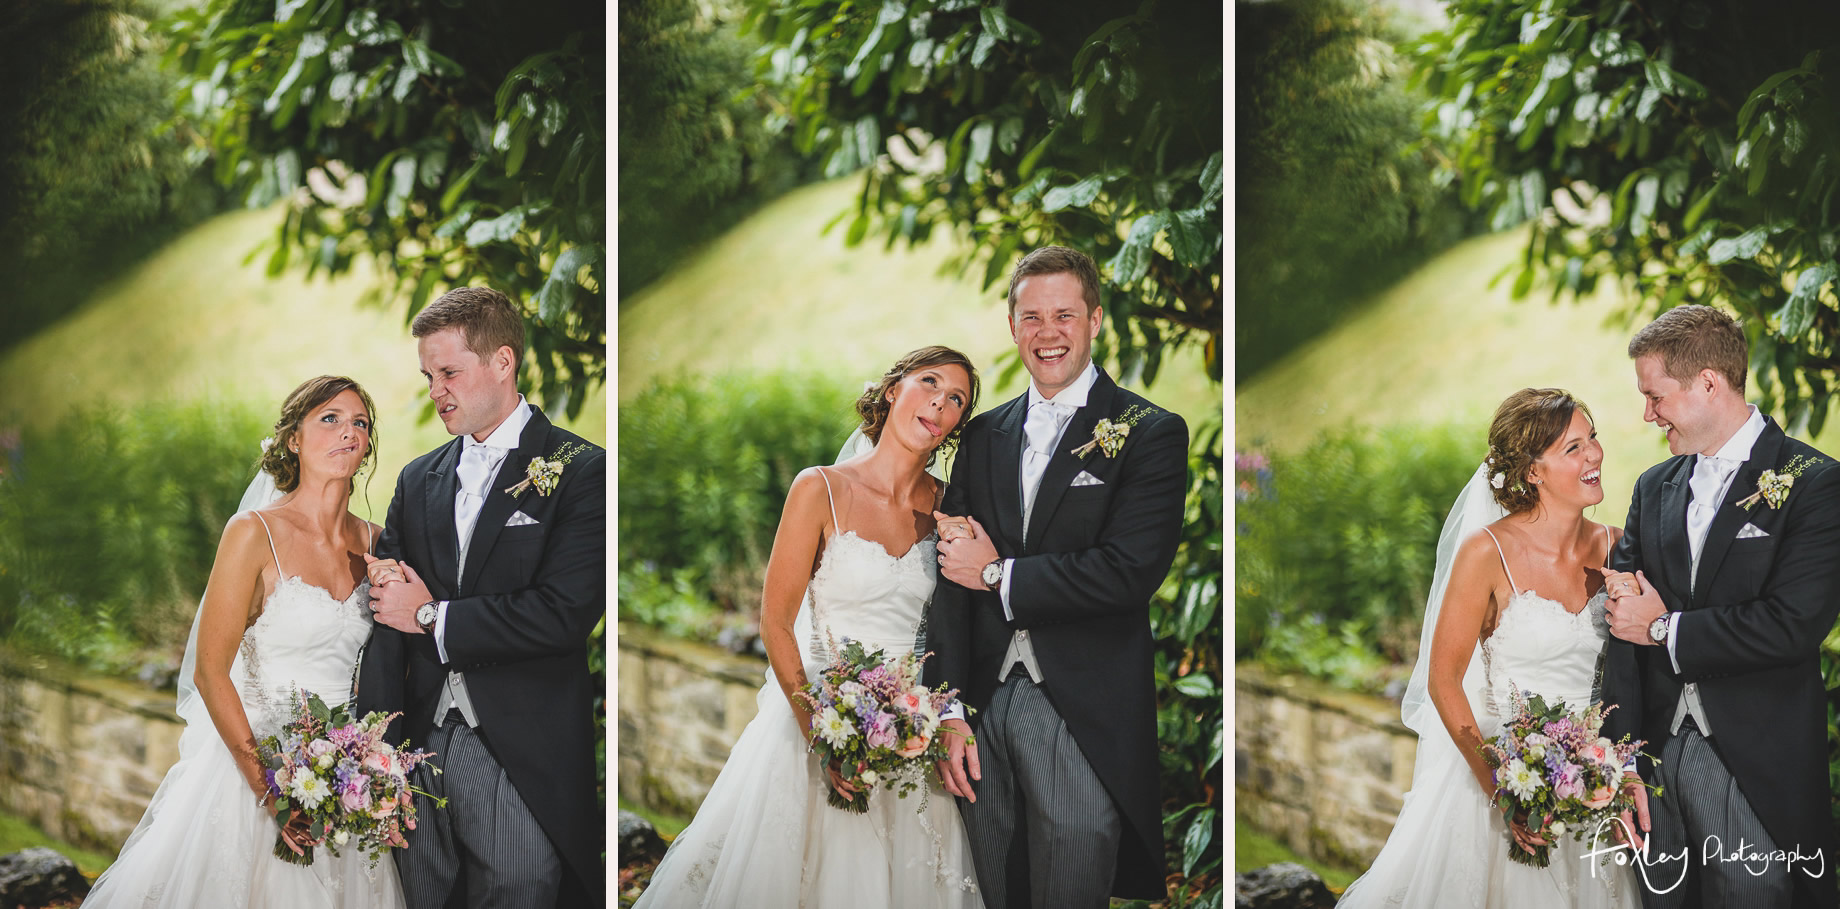 Claire and James' Wedding at Mitton Hall 136